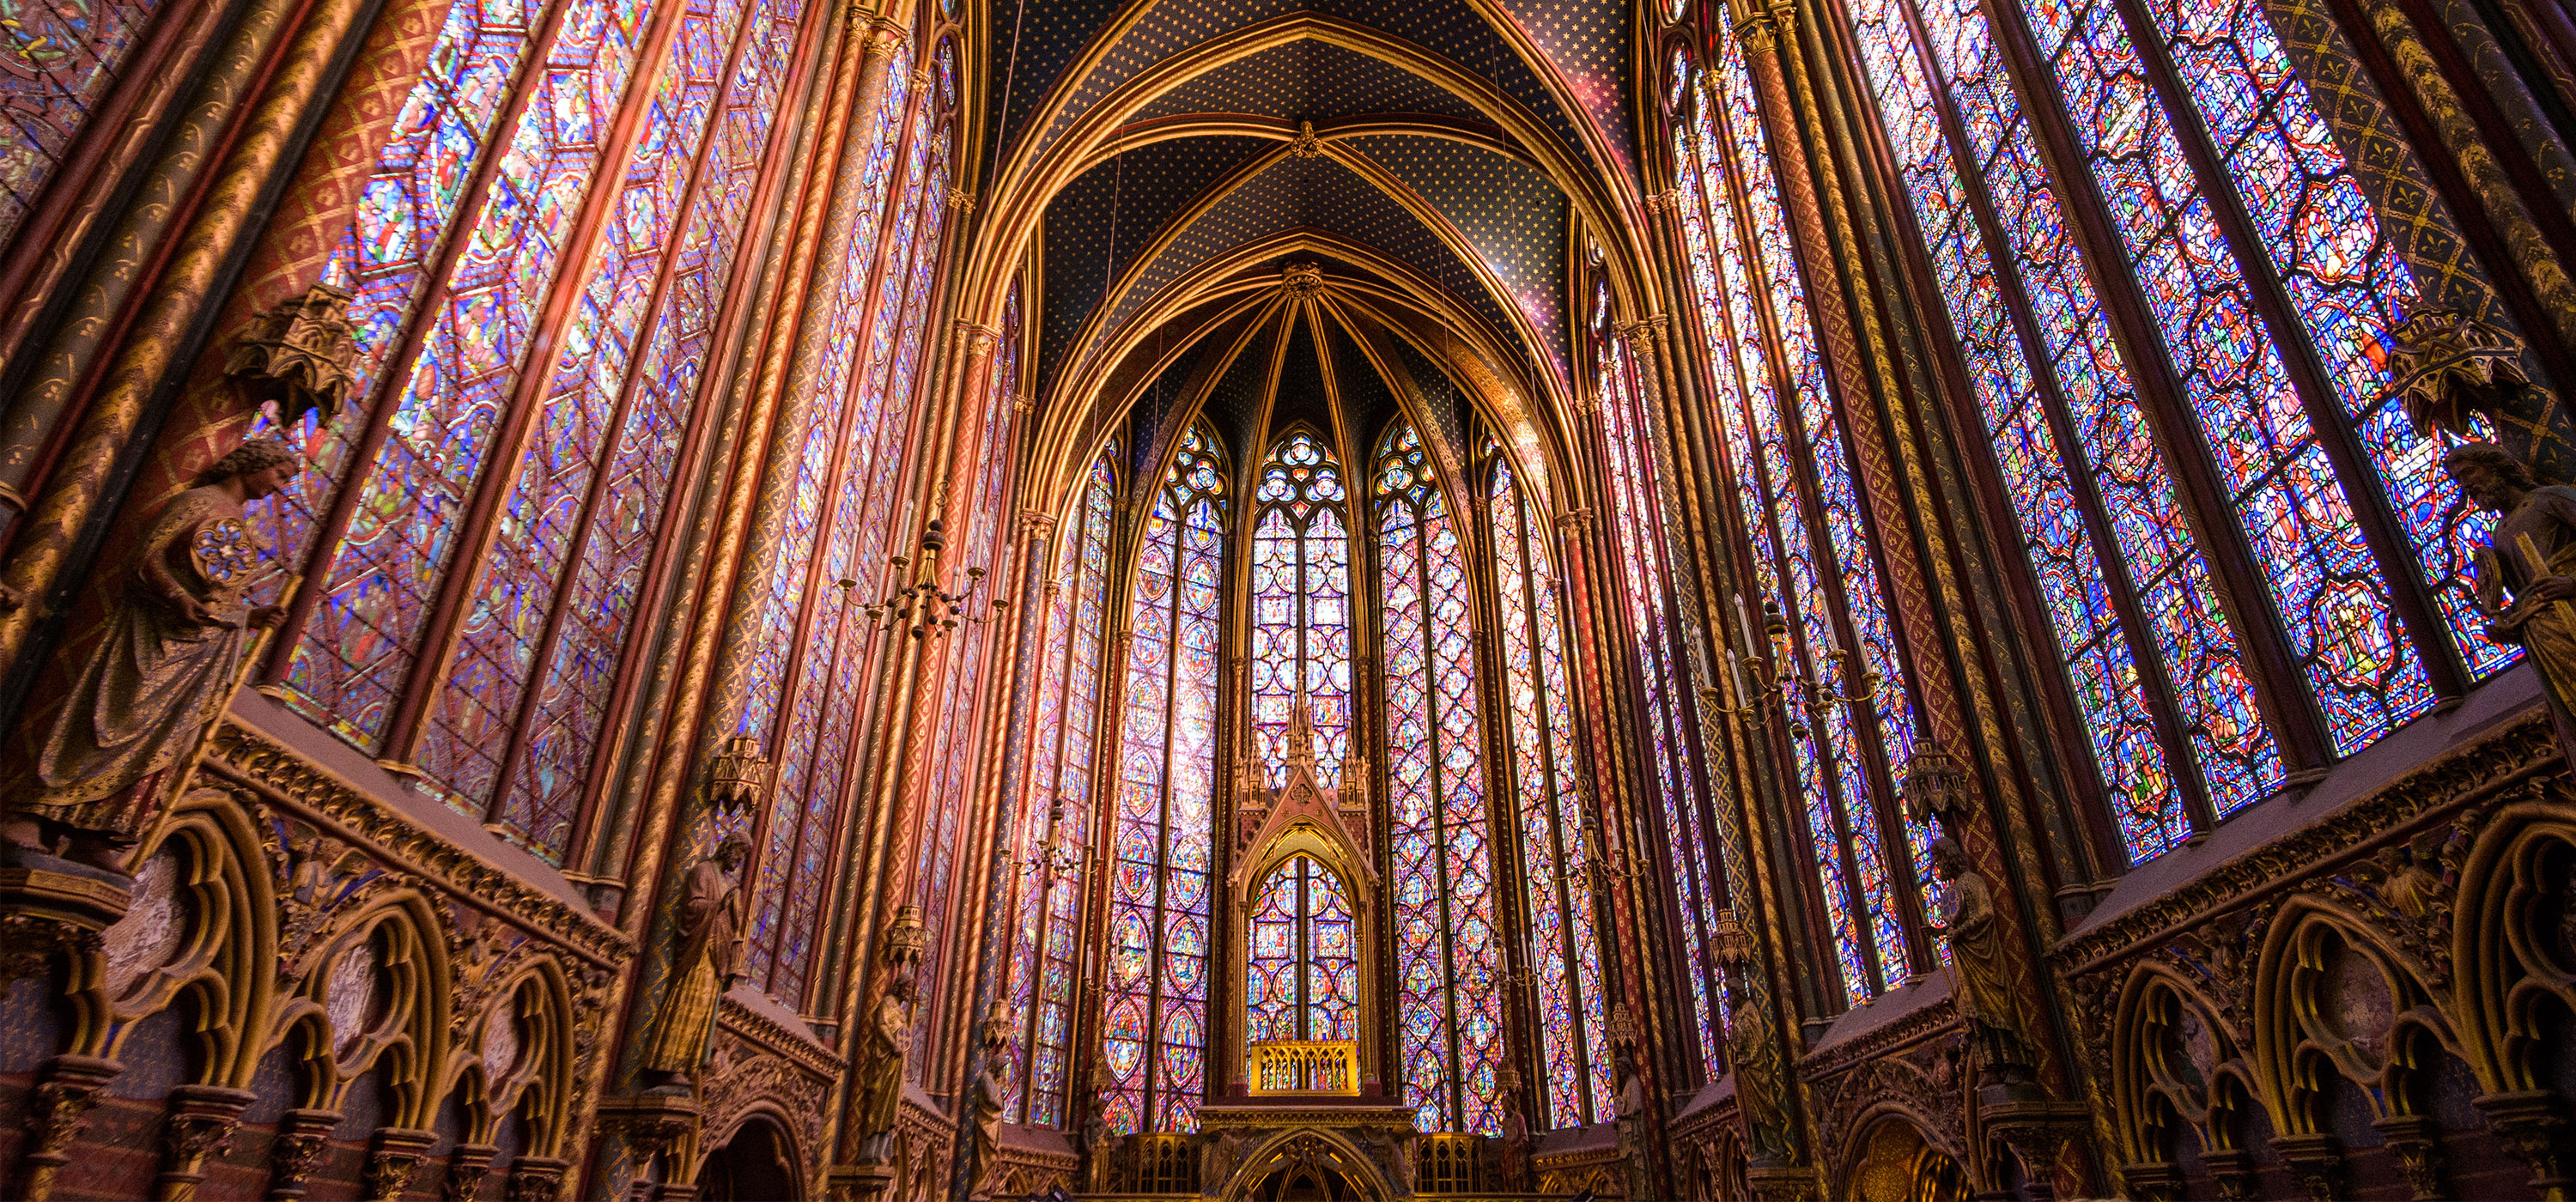 sainte-chapelle-kyrkor-paris